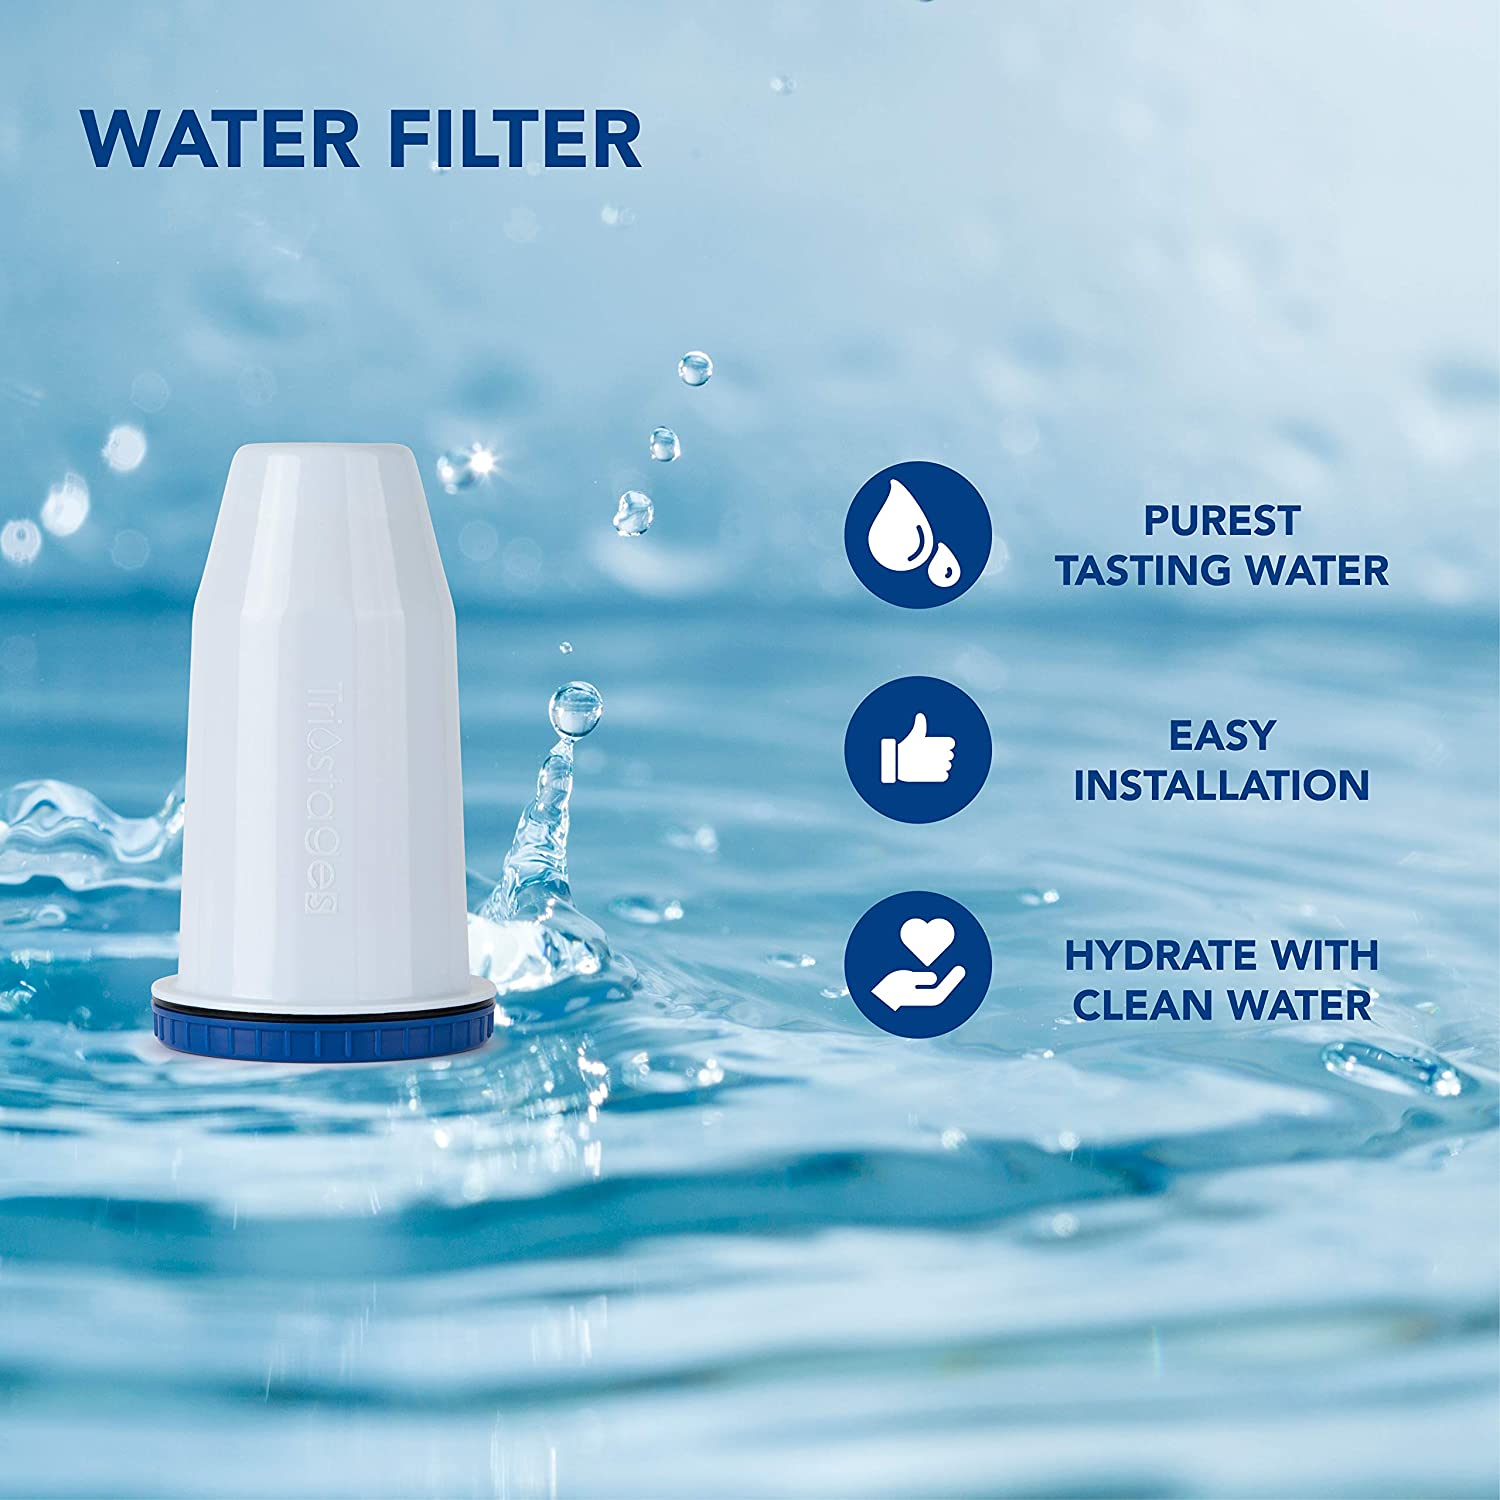 WQA Certified 150 Gallons | Supreme Fast Filtration and Purification Technology Nakii Water Filter Pitcher Long Lasting Metals /& Sediments for Clean Tasting Drinking Water Removes Chlorine